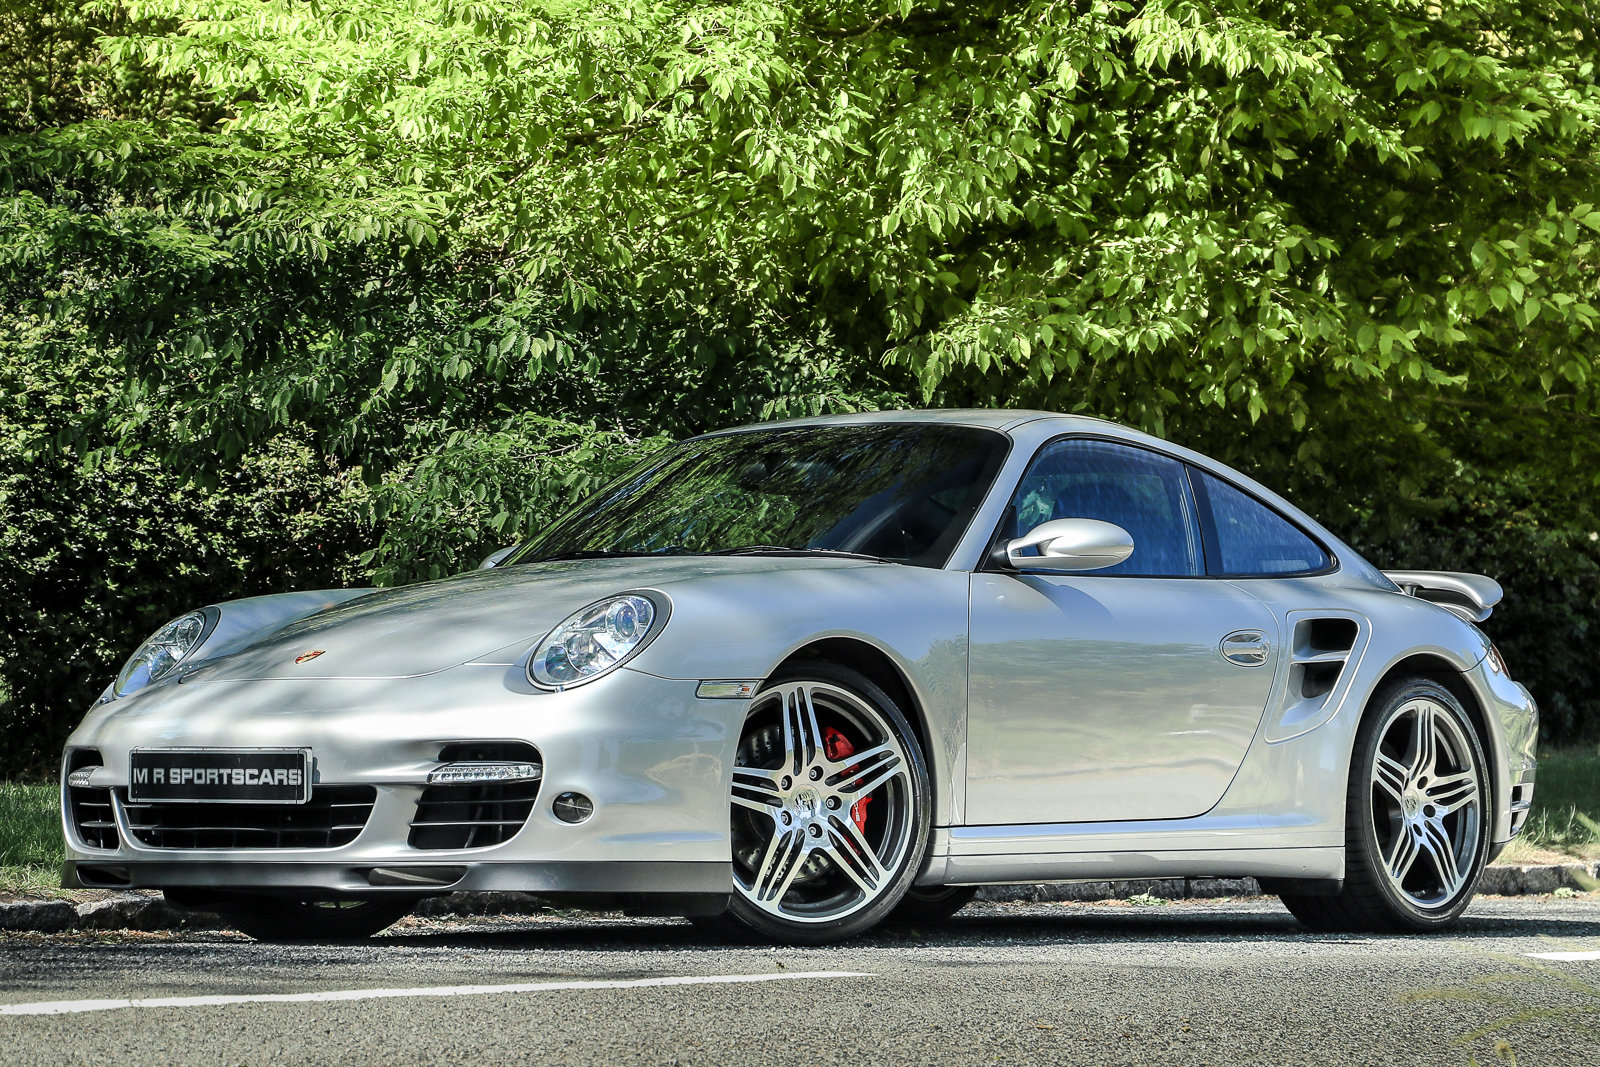 2009 Ultra Rare Porsche 911 Turbo 997 Gen 1.5 Manual Coupe For Sale (picture 1 of 6)